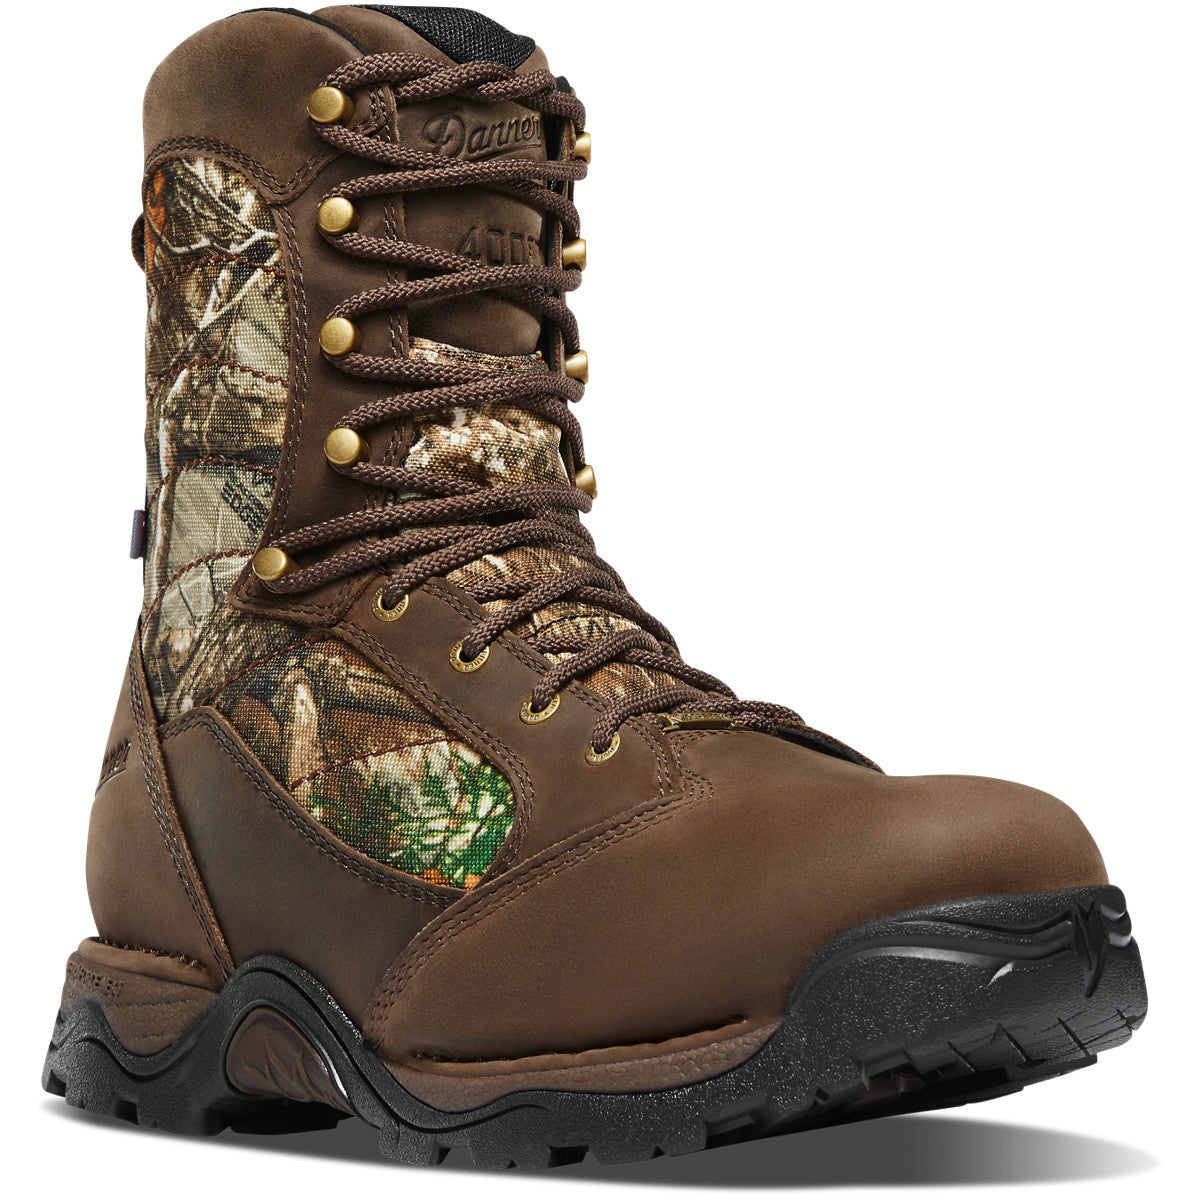 "Danner Pronghorn 8"" Realtree Edge 400G Insulated Gore-Tex Style 41341"